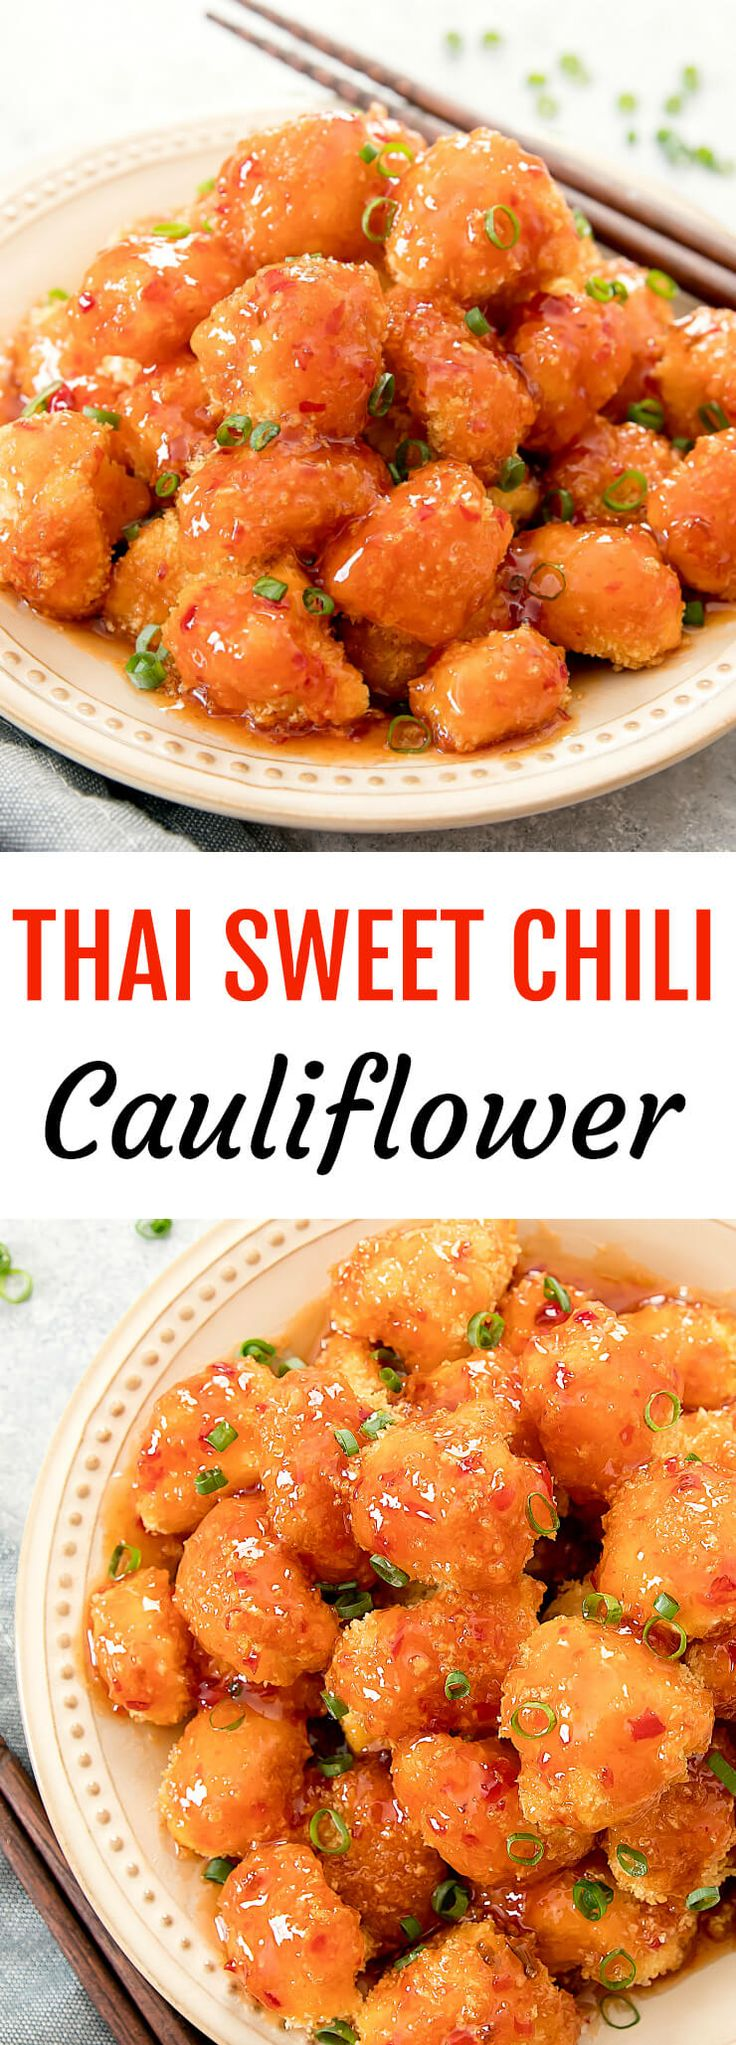 Thai Sweet Chili Cauliflower. Crispy baked panko coated cauliflower pieces are drizzled with a sweet, savory and spicy sweet chili sauce.